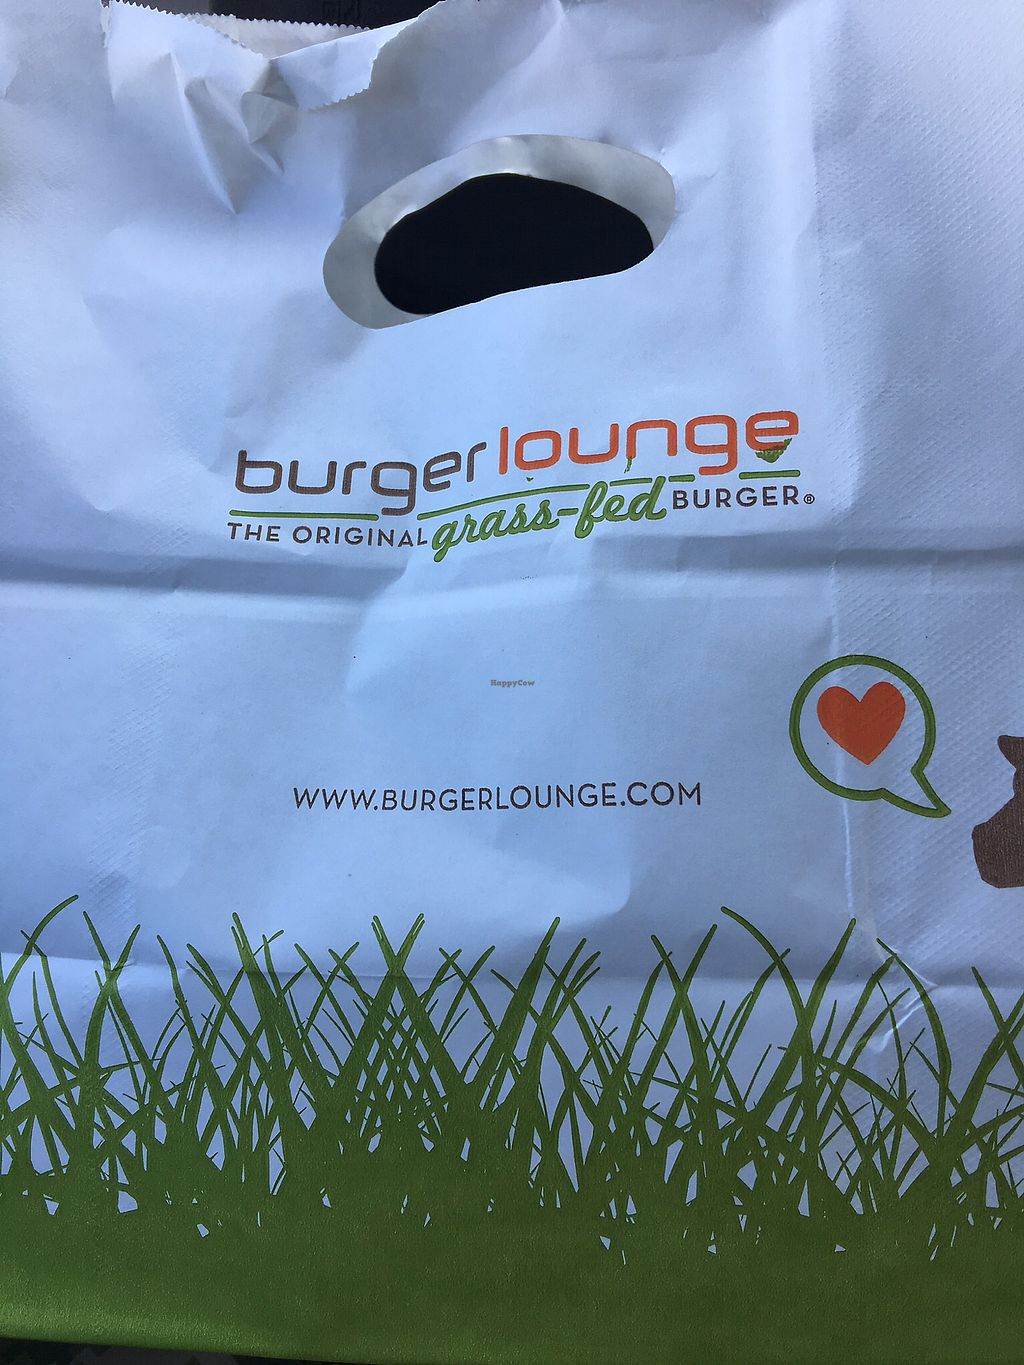 """Photo of Burger Lounge  by <a href=""""/members/profile/St_whit"""">St_whit</a> <br/>The Bag <br/> September 26, 2017  - <a href='/contact/abuse/image/25061/308838'>Report</a>"""